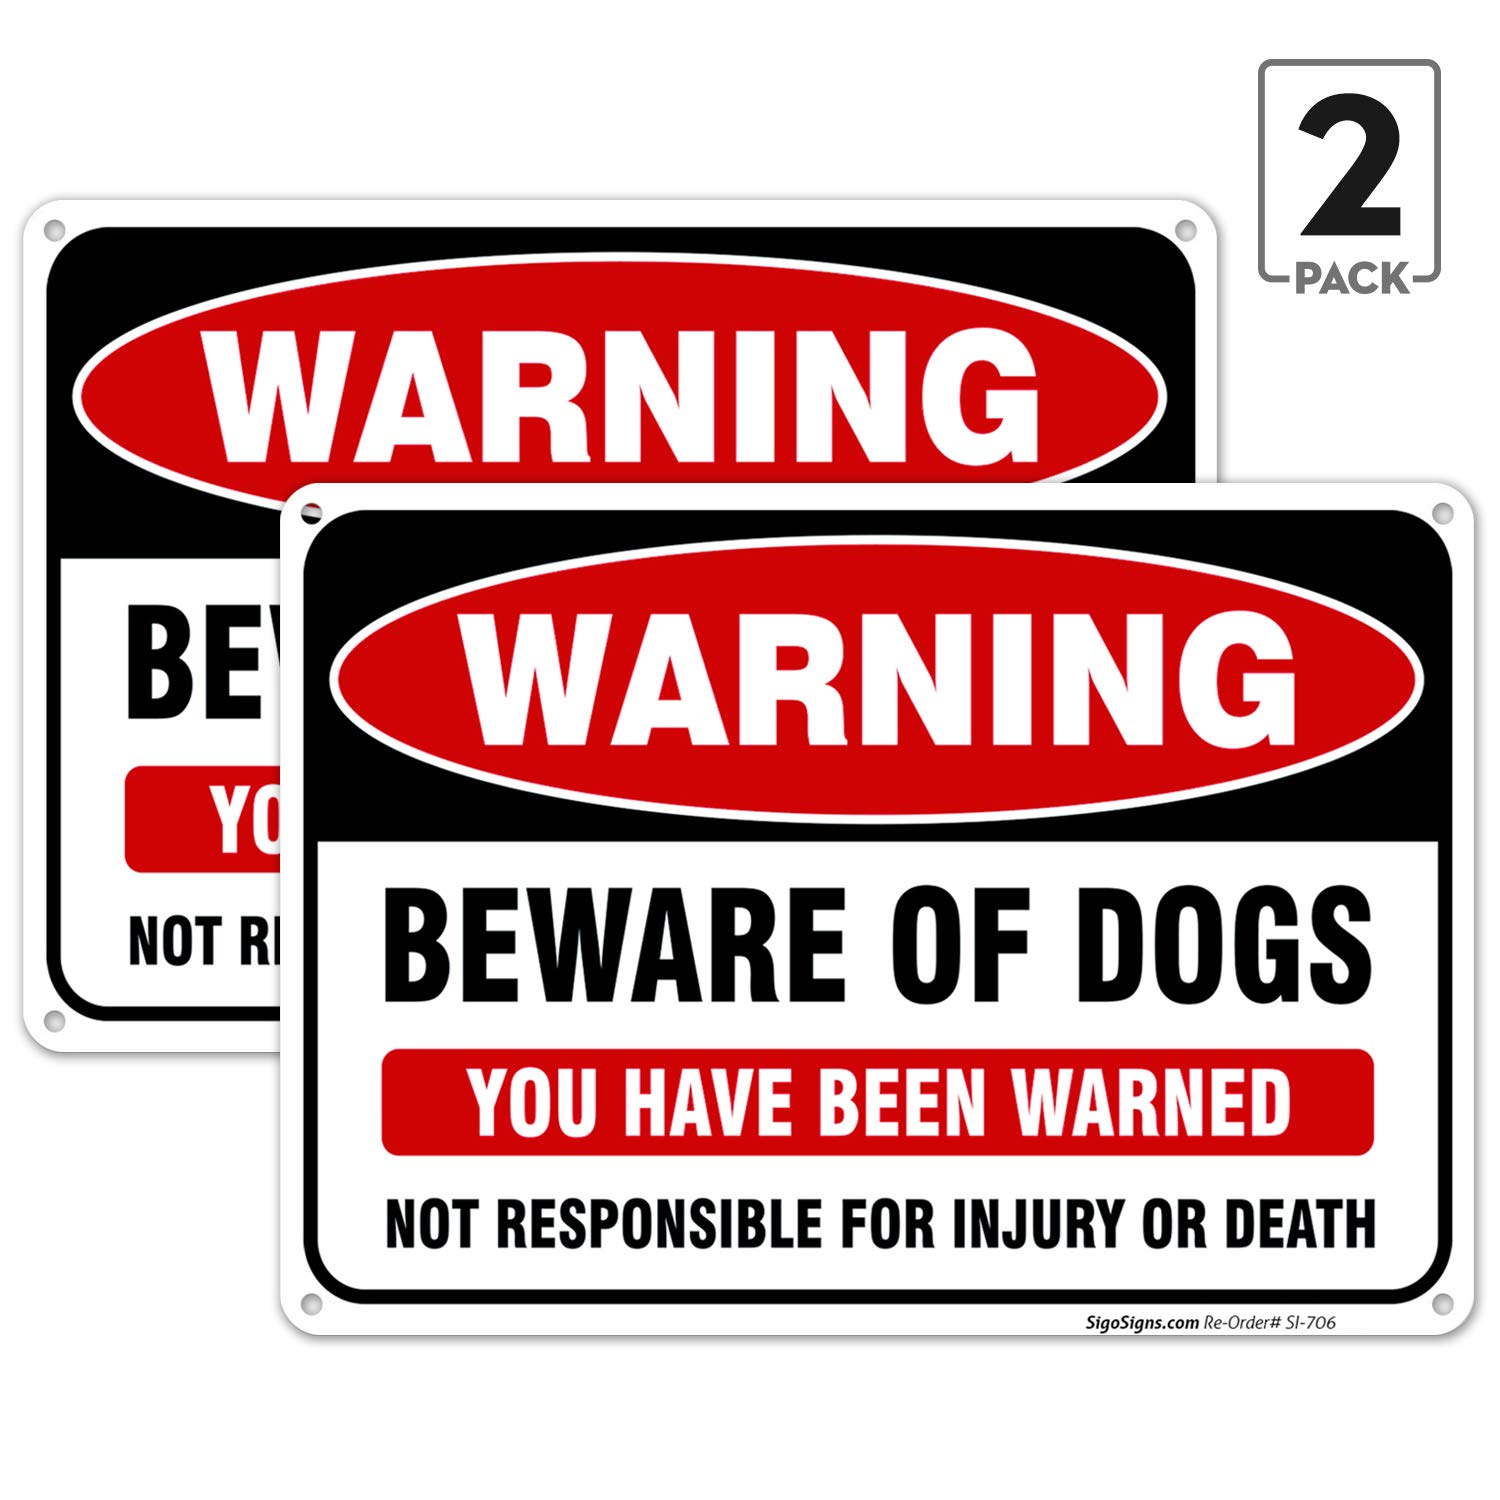 (2 Pack) Beware of Dog Sign, 10x7 Rust Free .040 Aluminum, UV Printed, Easy to Mount Weather Resistant Long Lasting Ink Made in USA by SIGO SIGNS